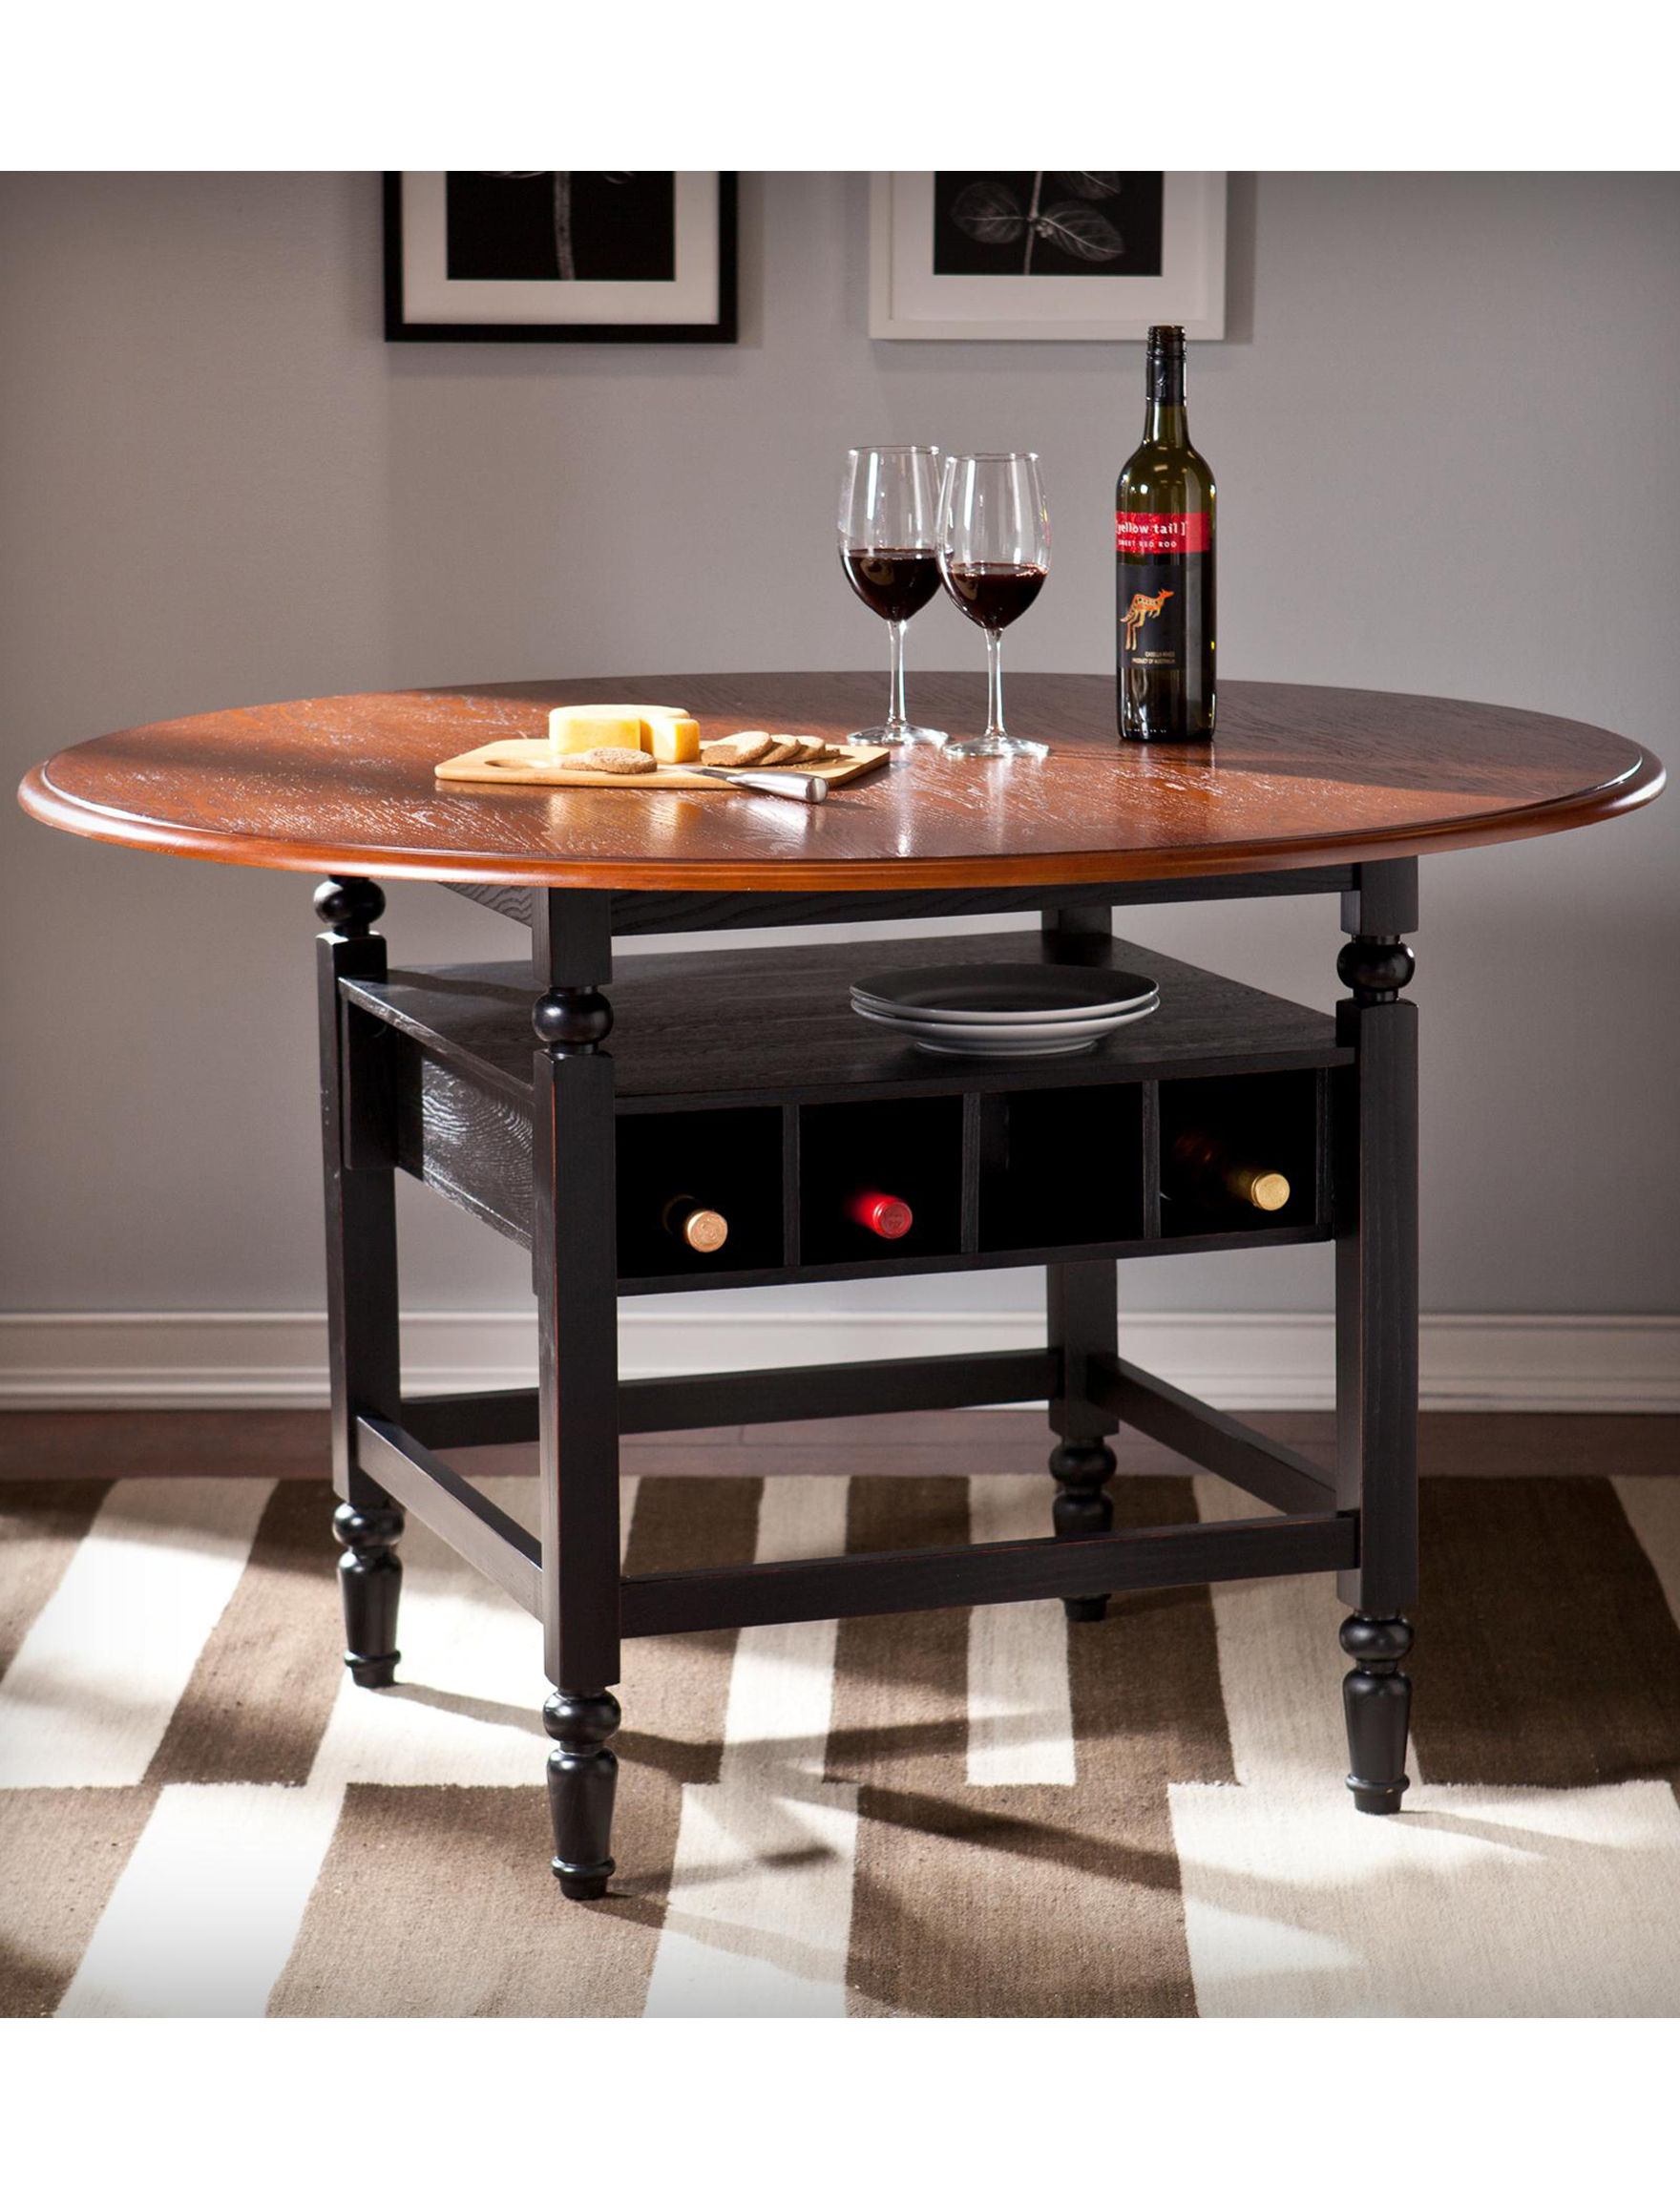 Southern Enterprises Black Dining Tables Home Accents Kitchen & Dining Furniture